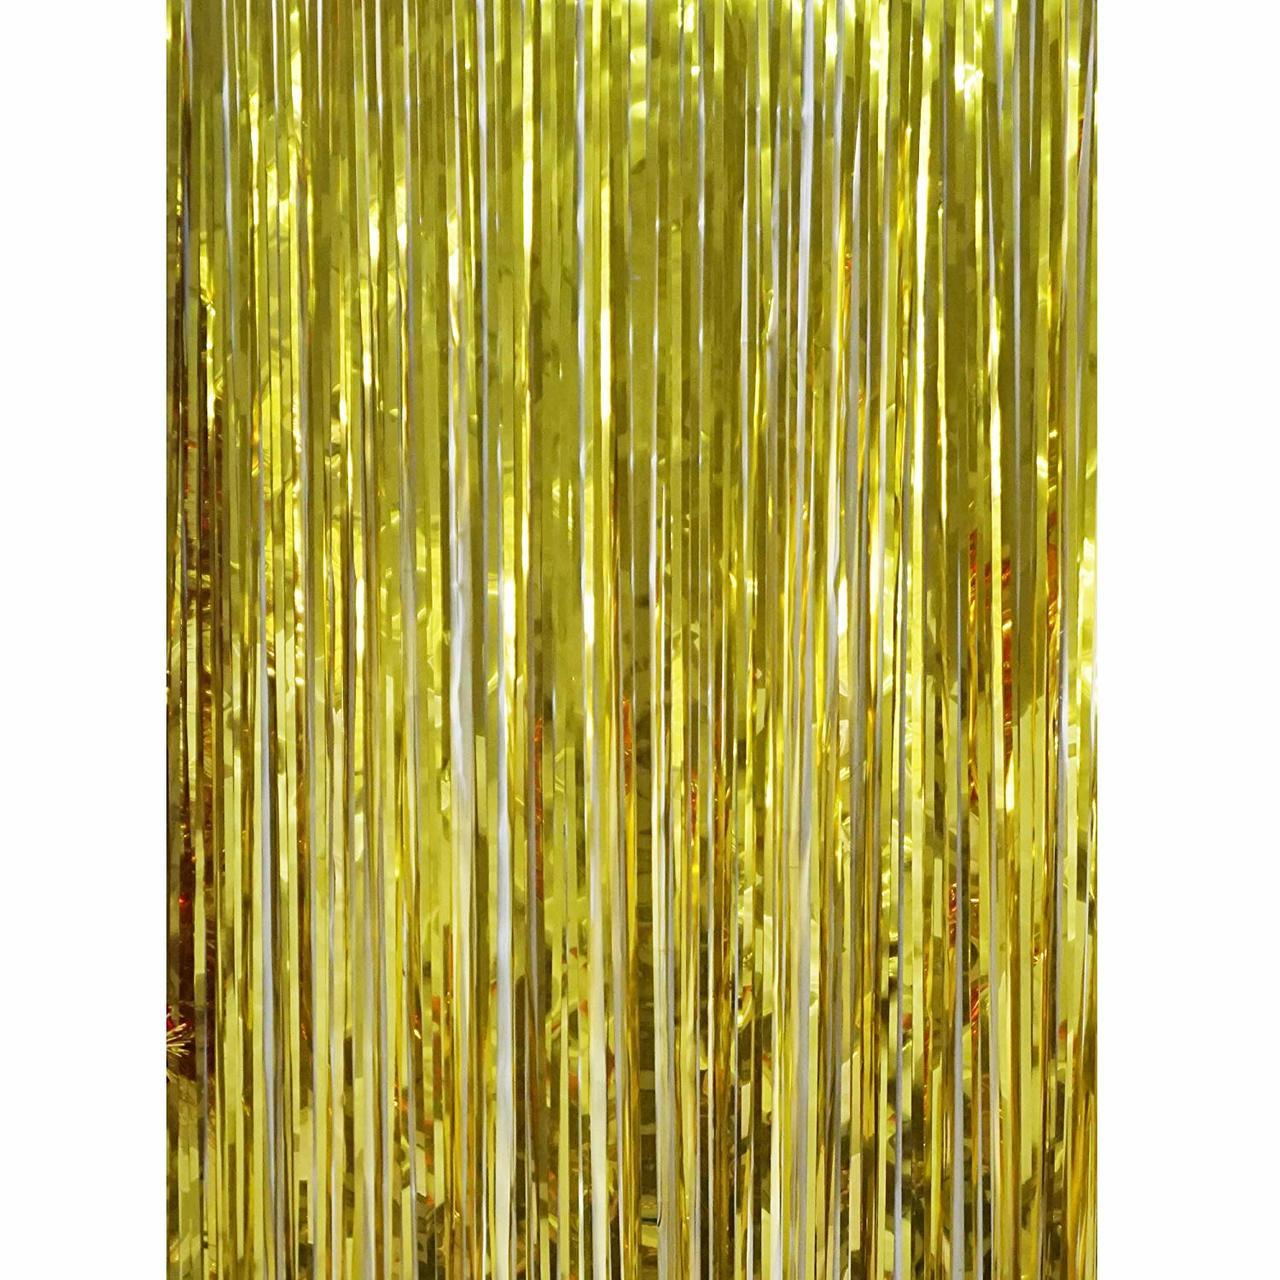 Metallic Foil Fringe Shiny Gold Curtain with Two Bonus Fringe Garlands for Parties and Event Decorations Photo Booth Decorations